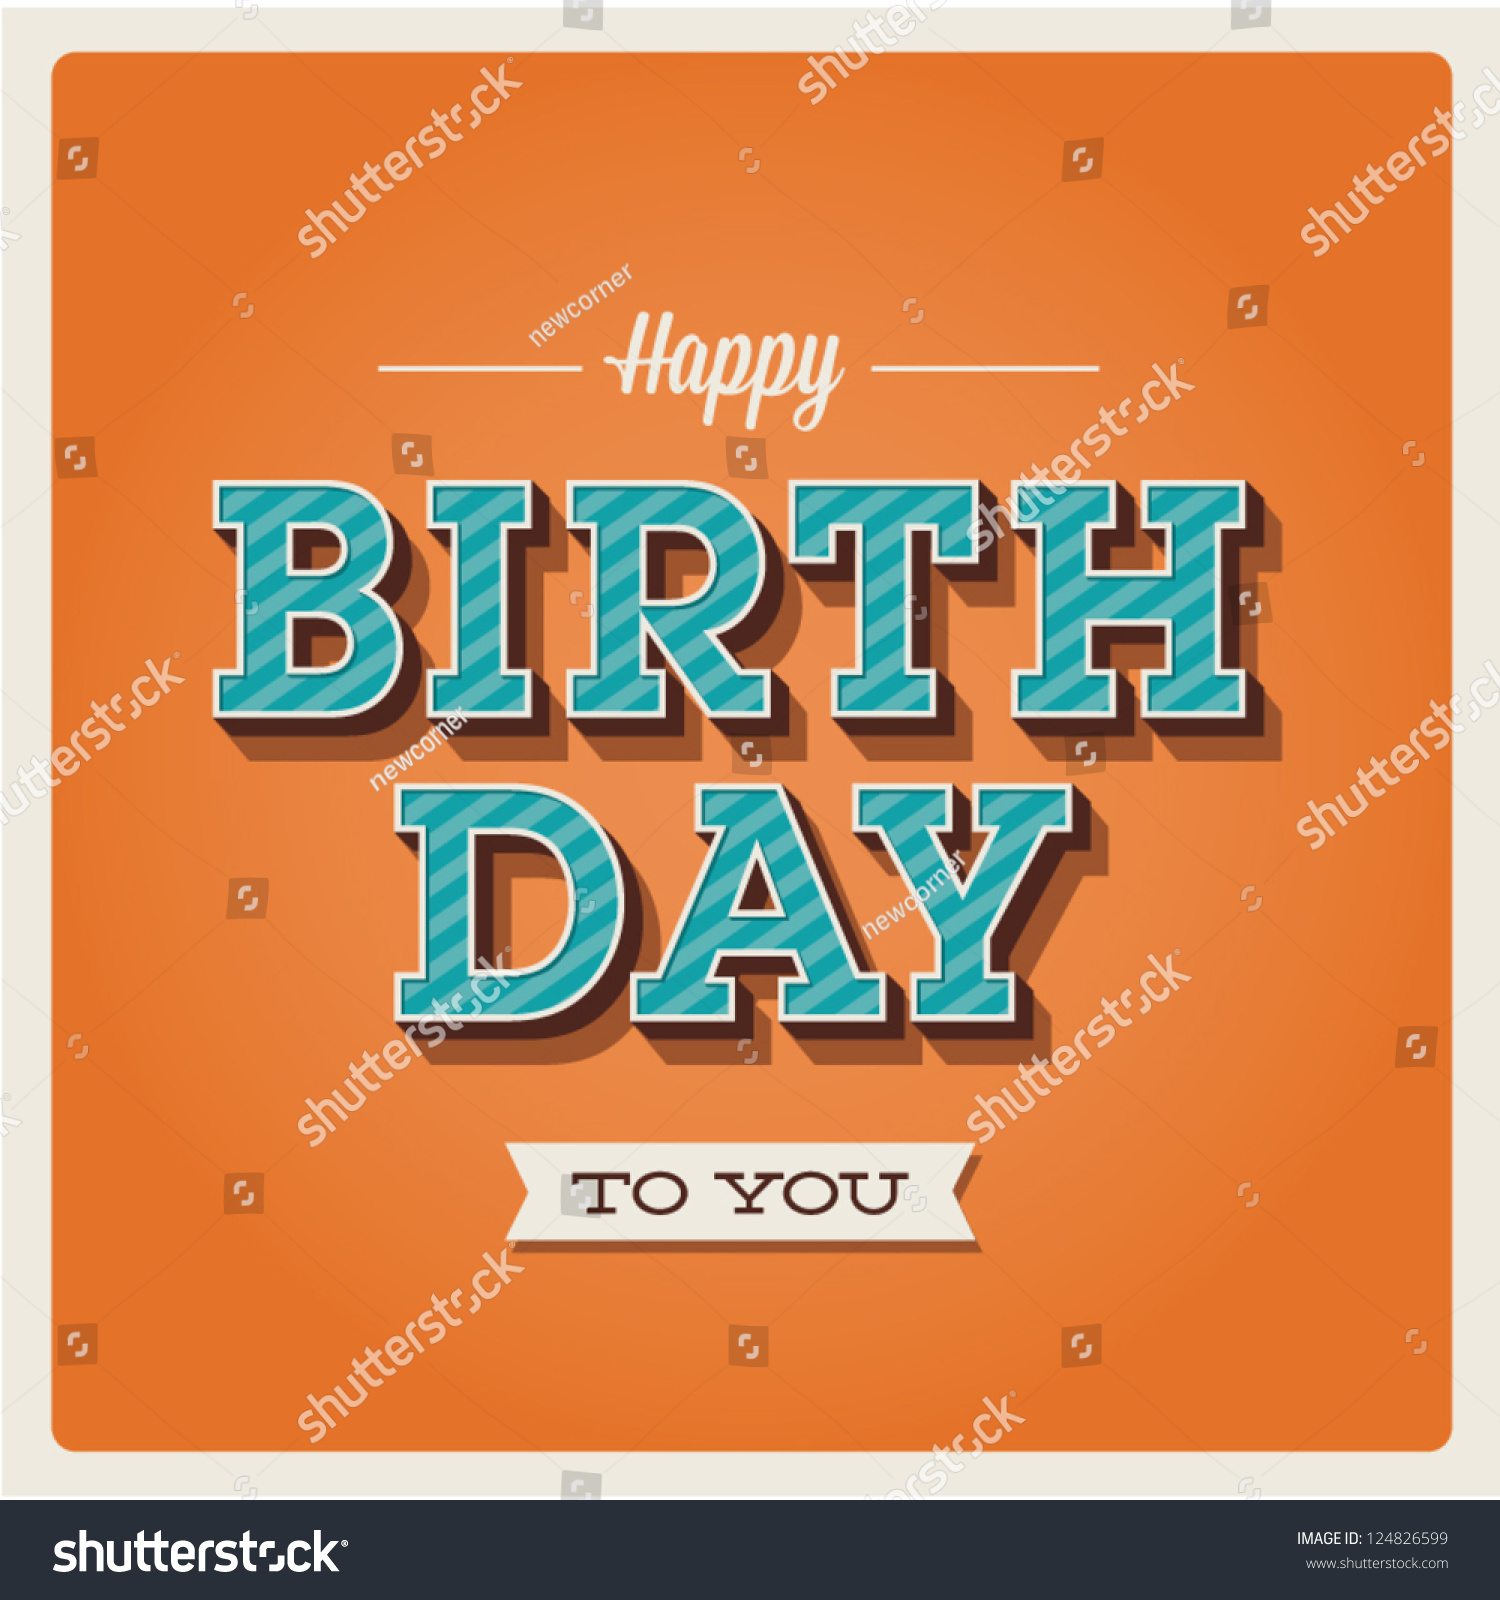 Happy birthday card retro vintage typography stock vector 124826599 happy birthday card retro vintage typography letters font type editable for happy birthday thecheapjerseys Images